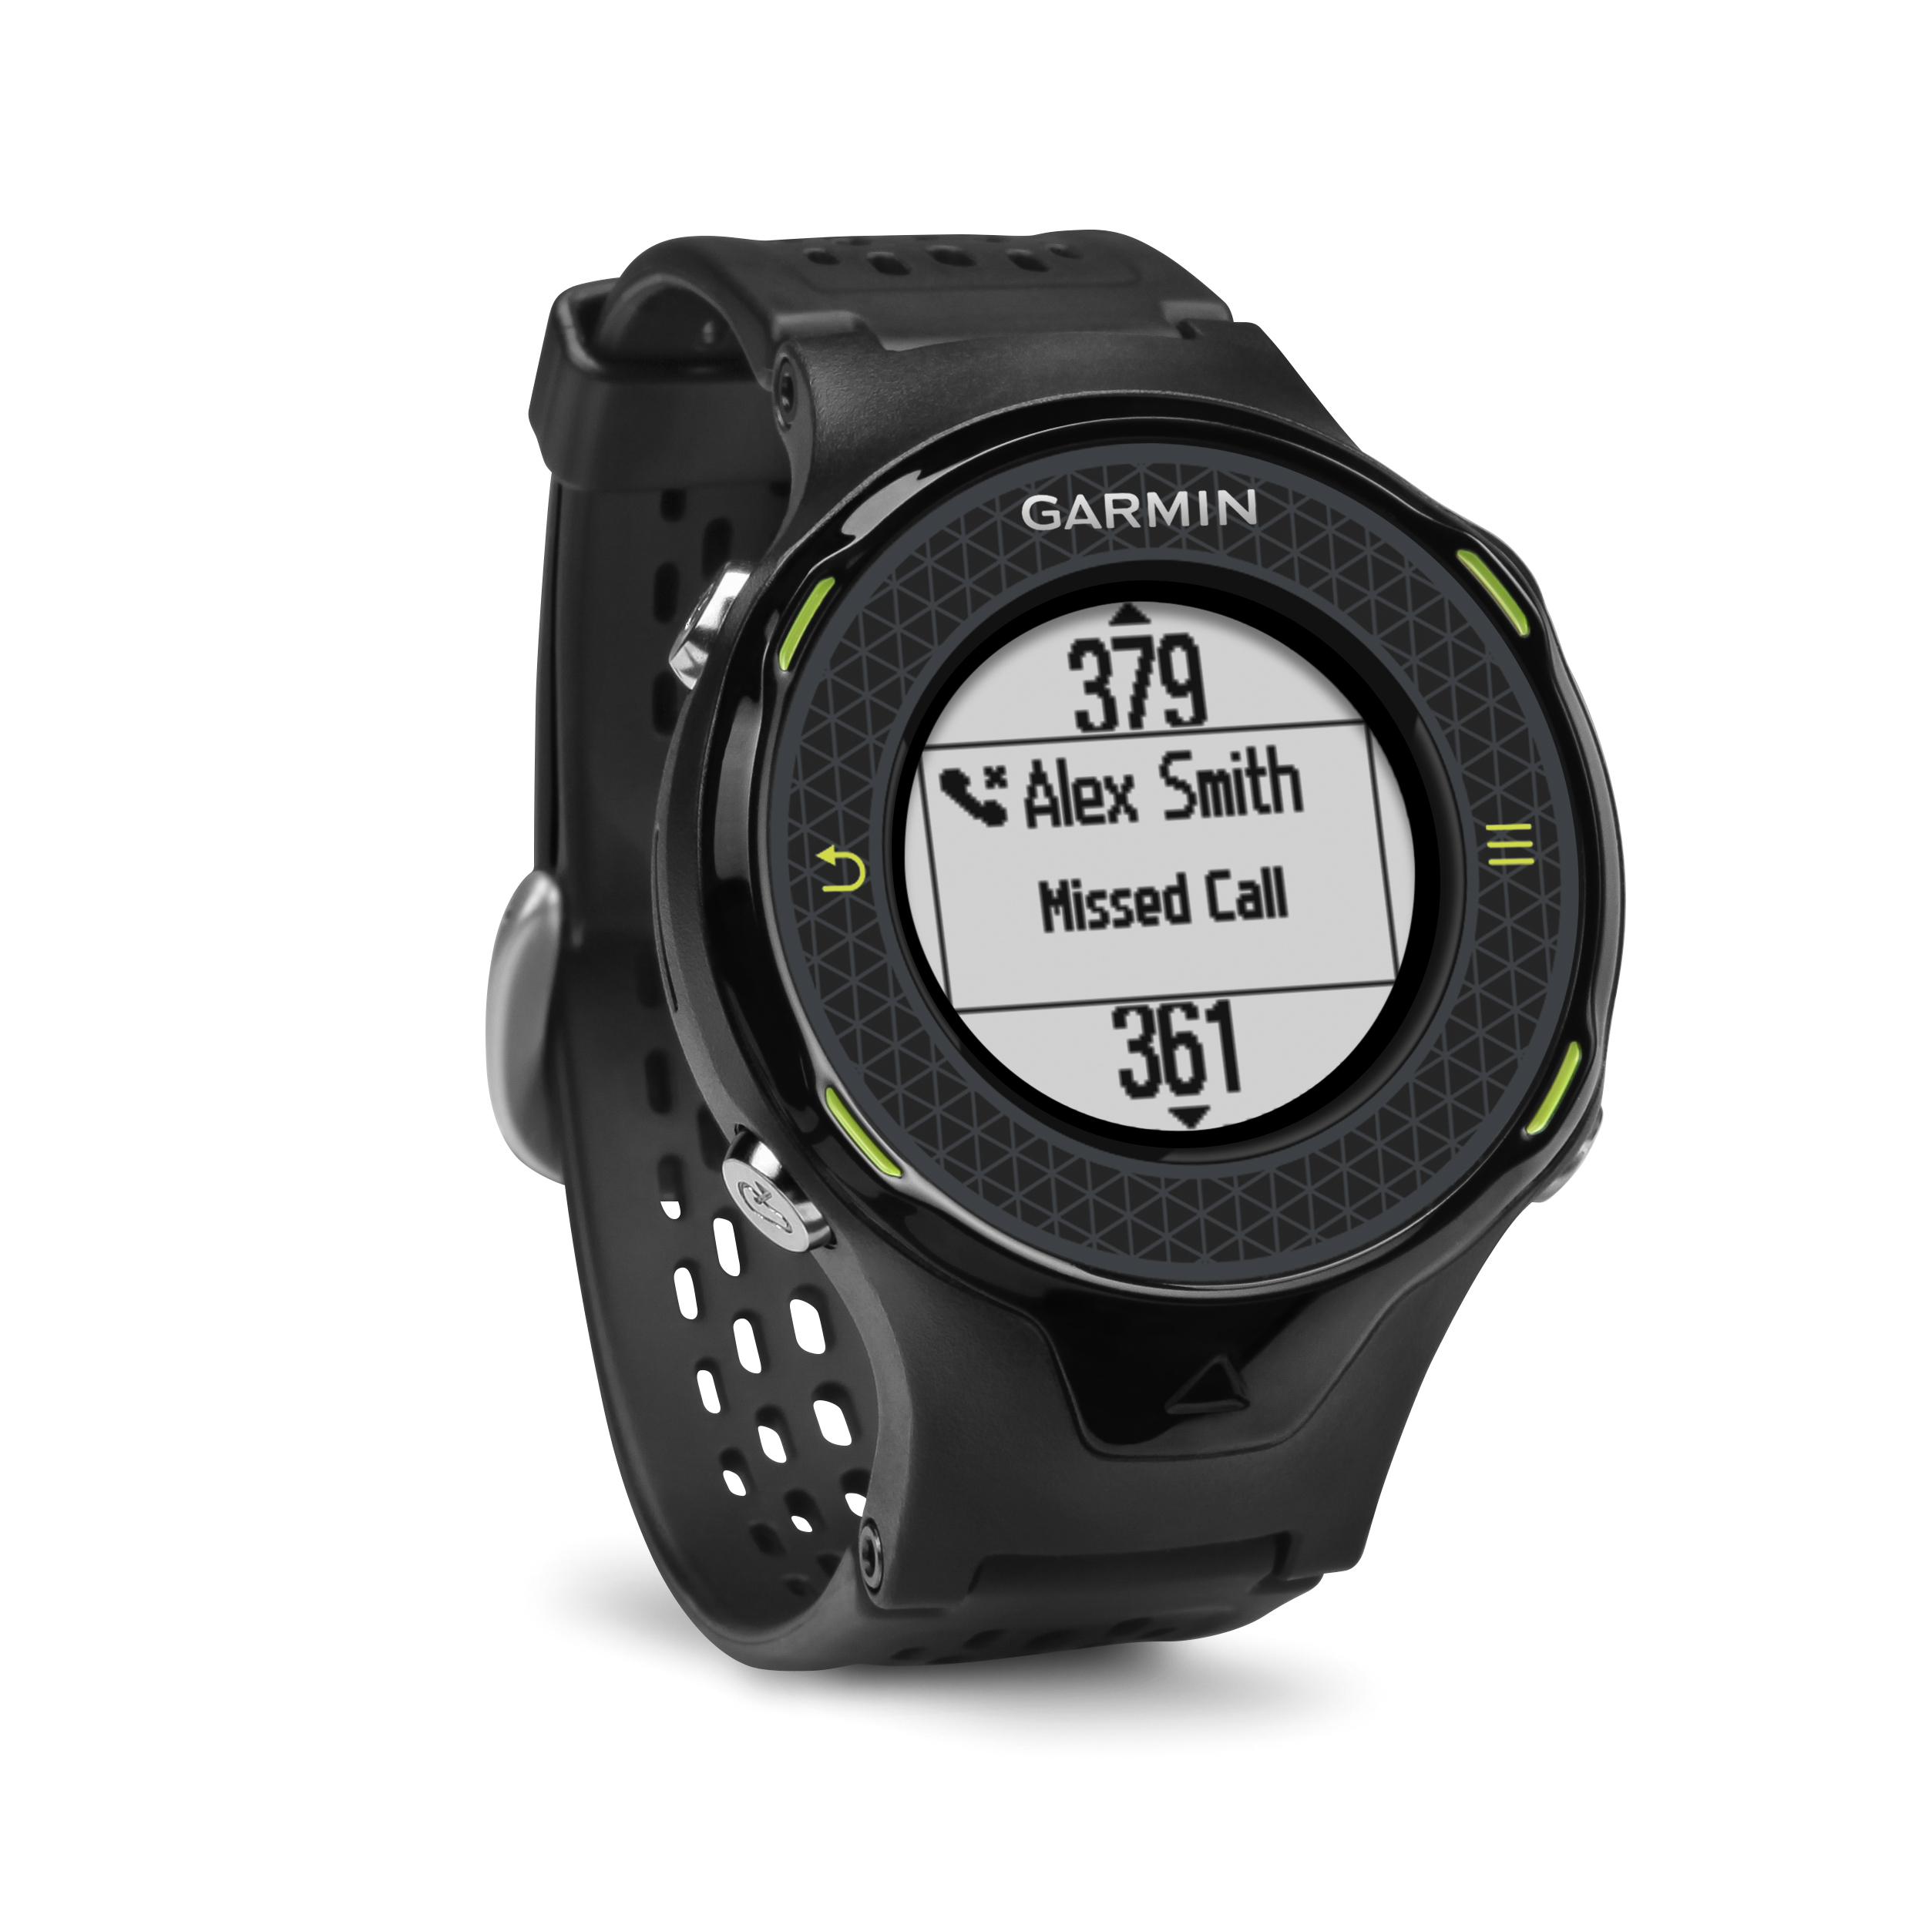 Garmin expand range with Approach S4